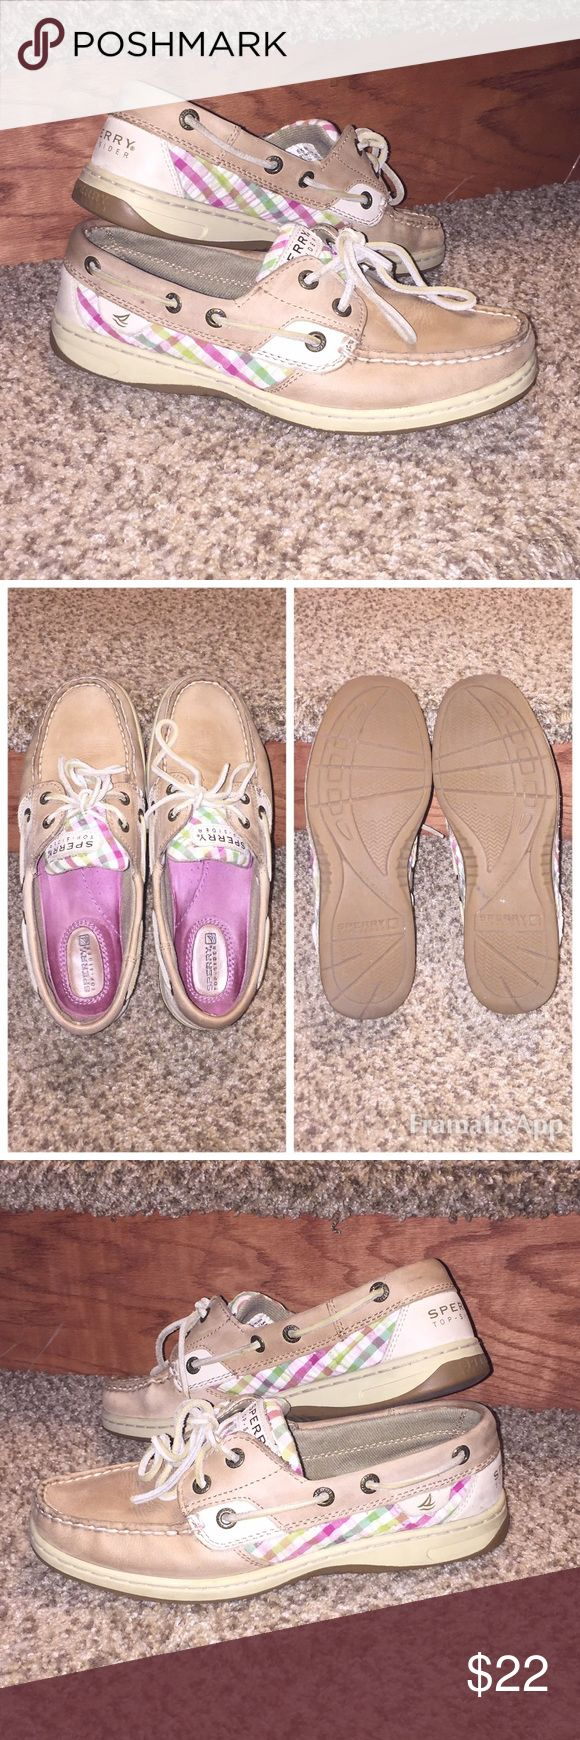 Women's Sperry Bluefish Shoe Gently used, still have a lot of life! No major scuffs, stains, or marks.  Tread in good condition. I always wore socks, so no stinky foot smell! Stored in box when not in use and will send original box if purchased. Sperry Top-Sider Shoes